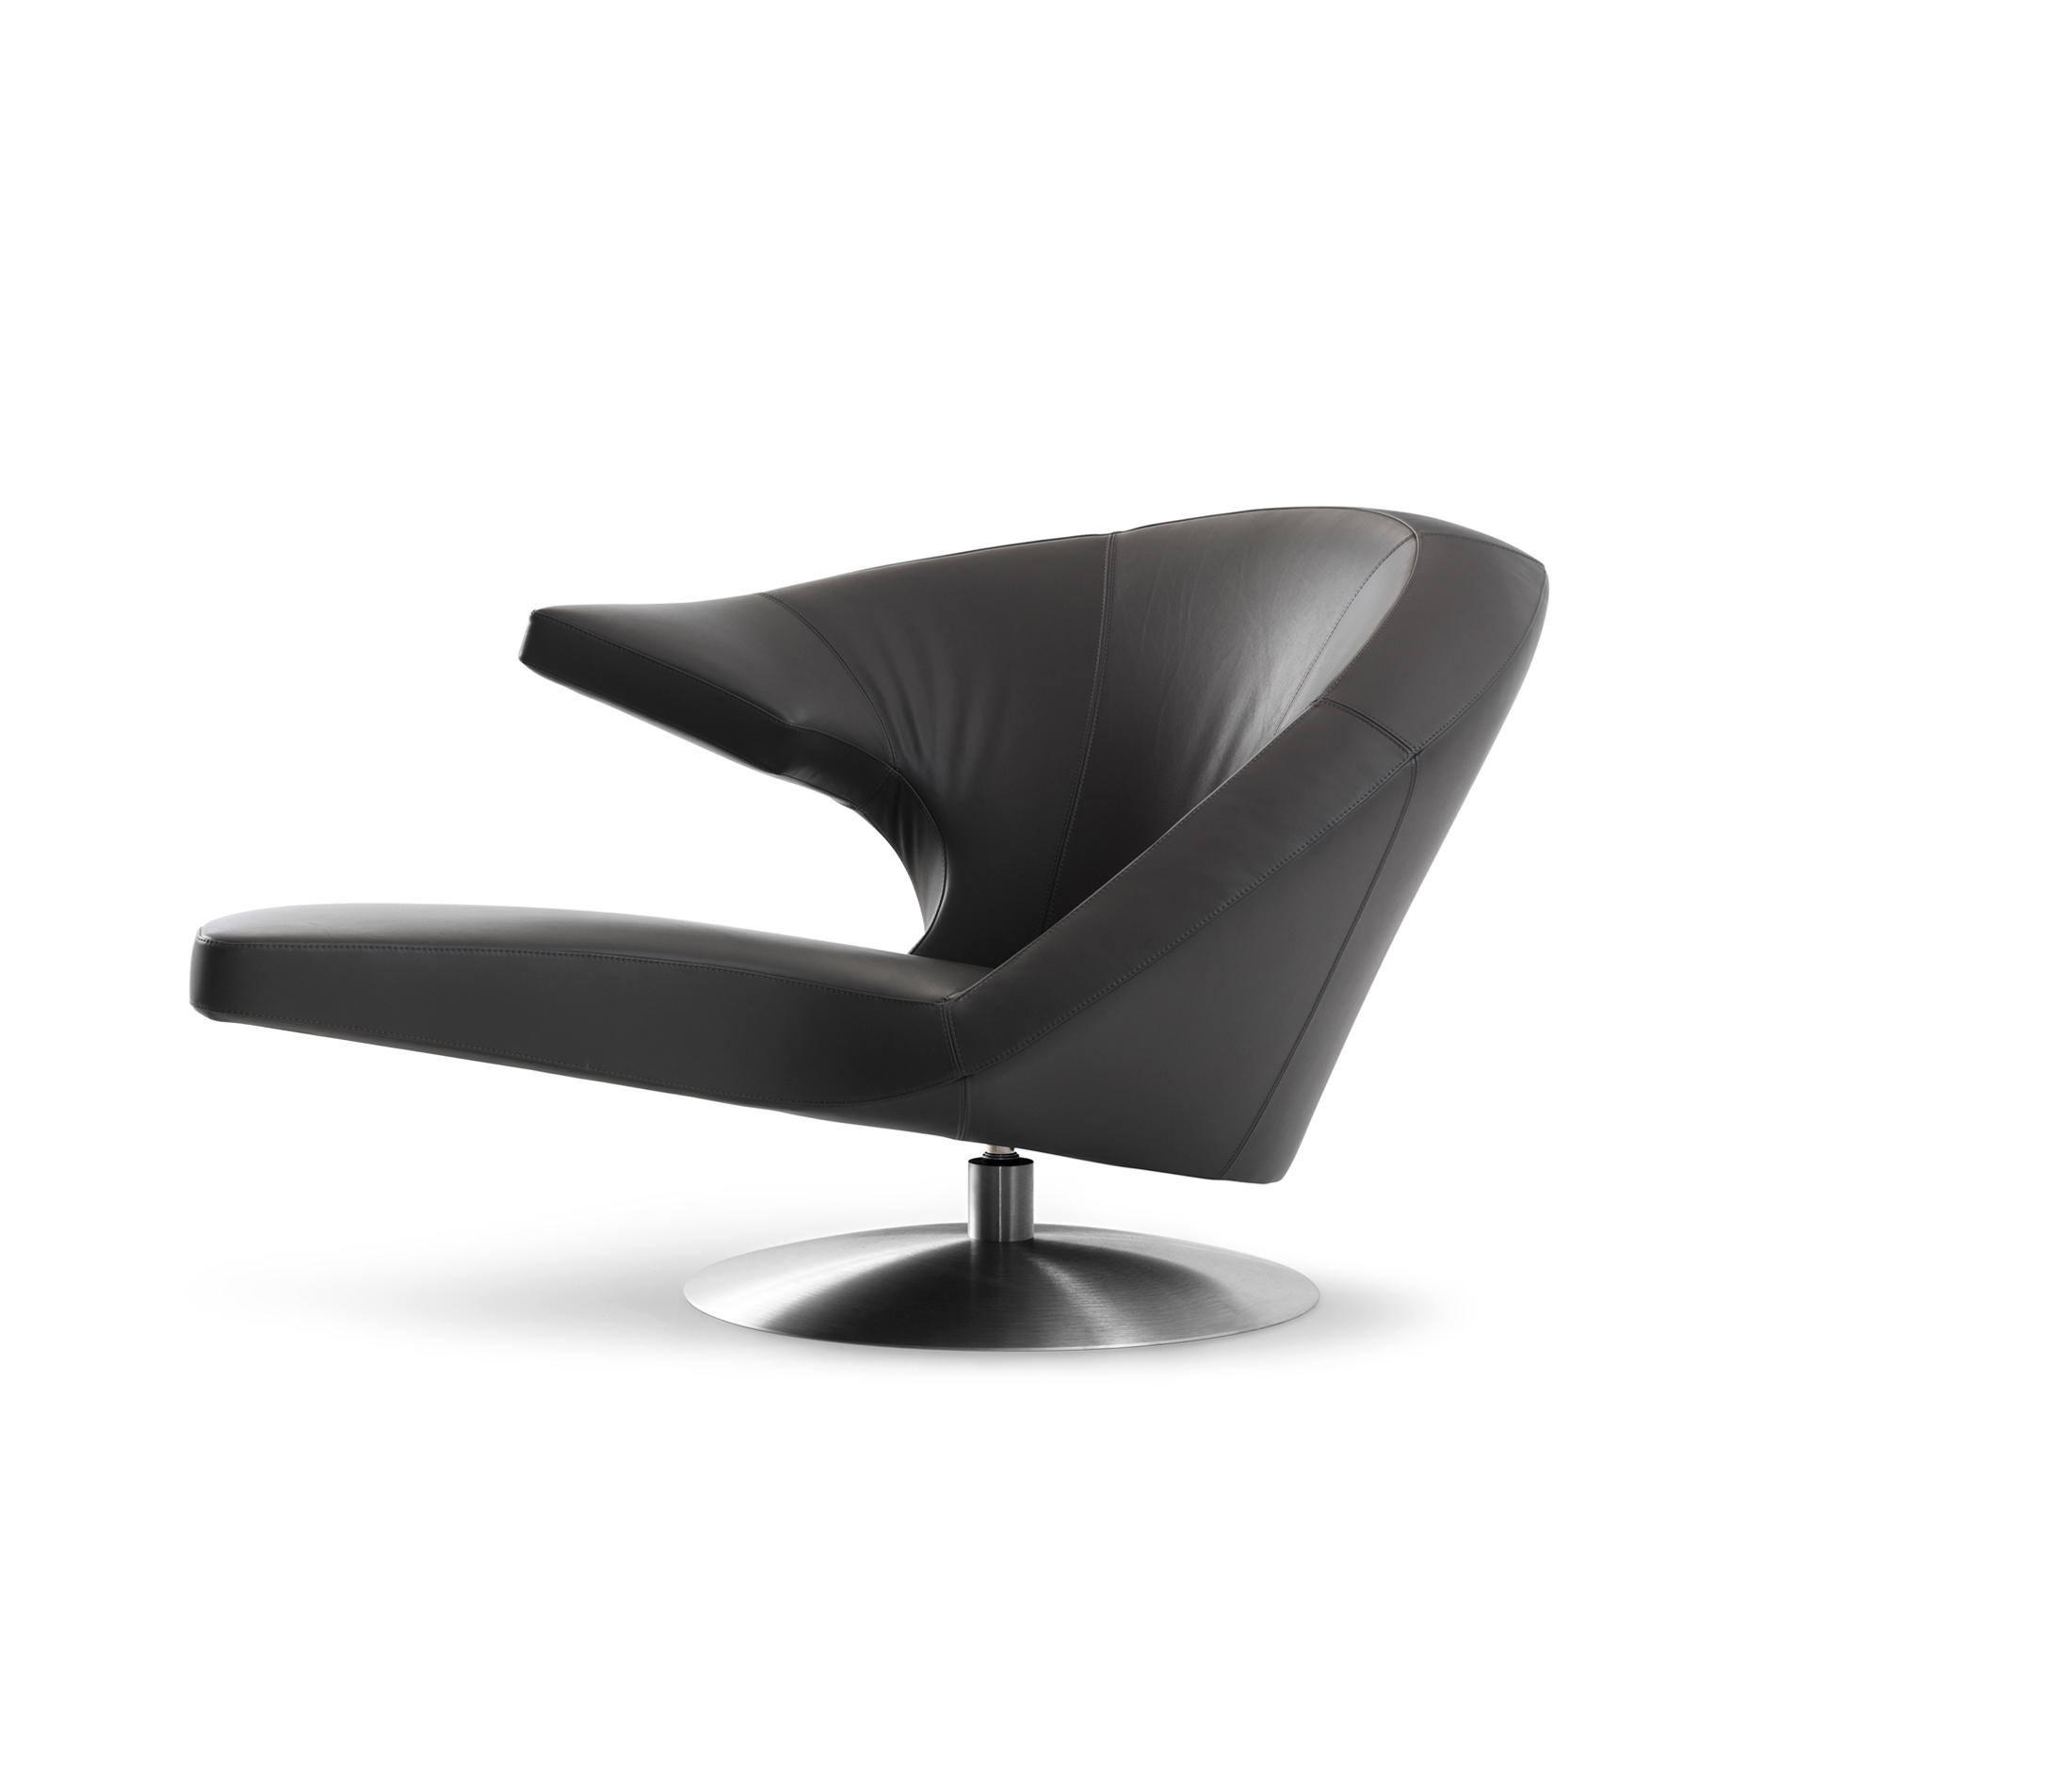 ... Parabolica Armchair By Leolux | Chaise Longues ...